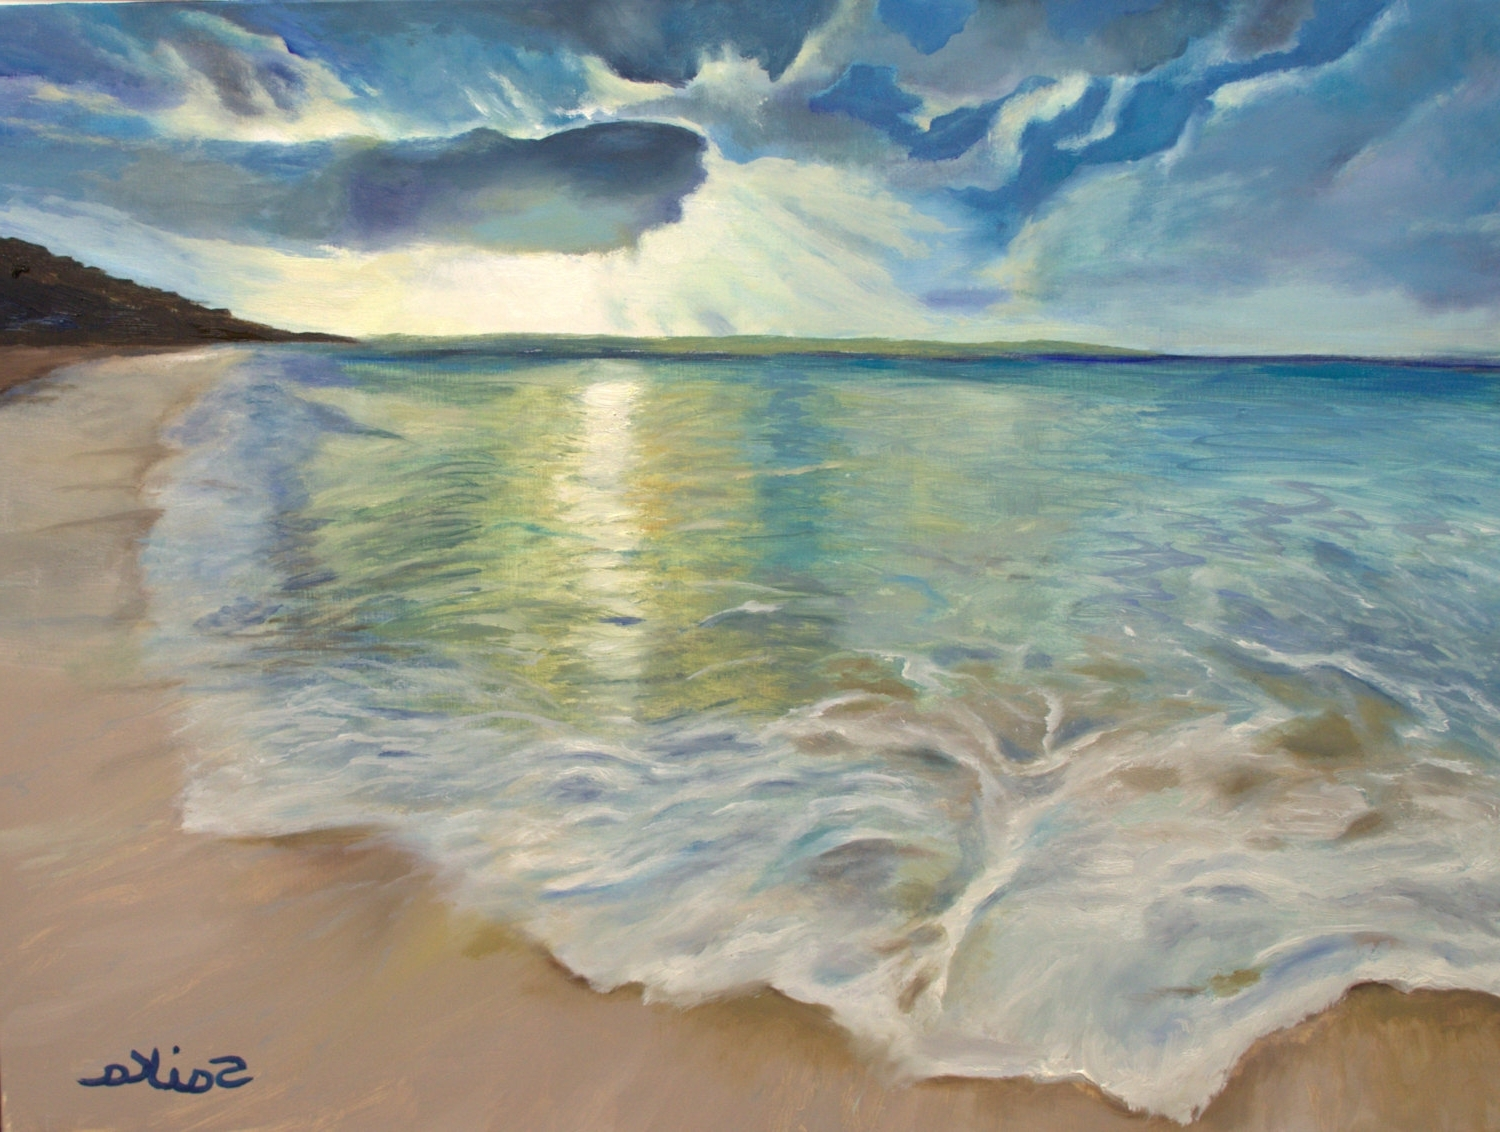 Trendy Summer Love, Oil Painting 18X24, Beach Scene,ocean, Wall Art, Home Within Canvas Wall Art Beach Scenes (View 10 of 15)